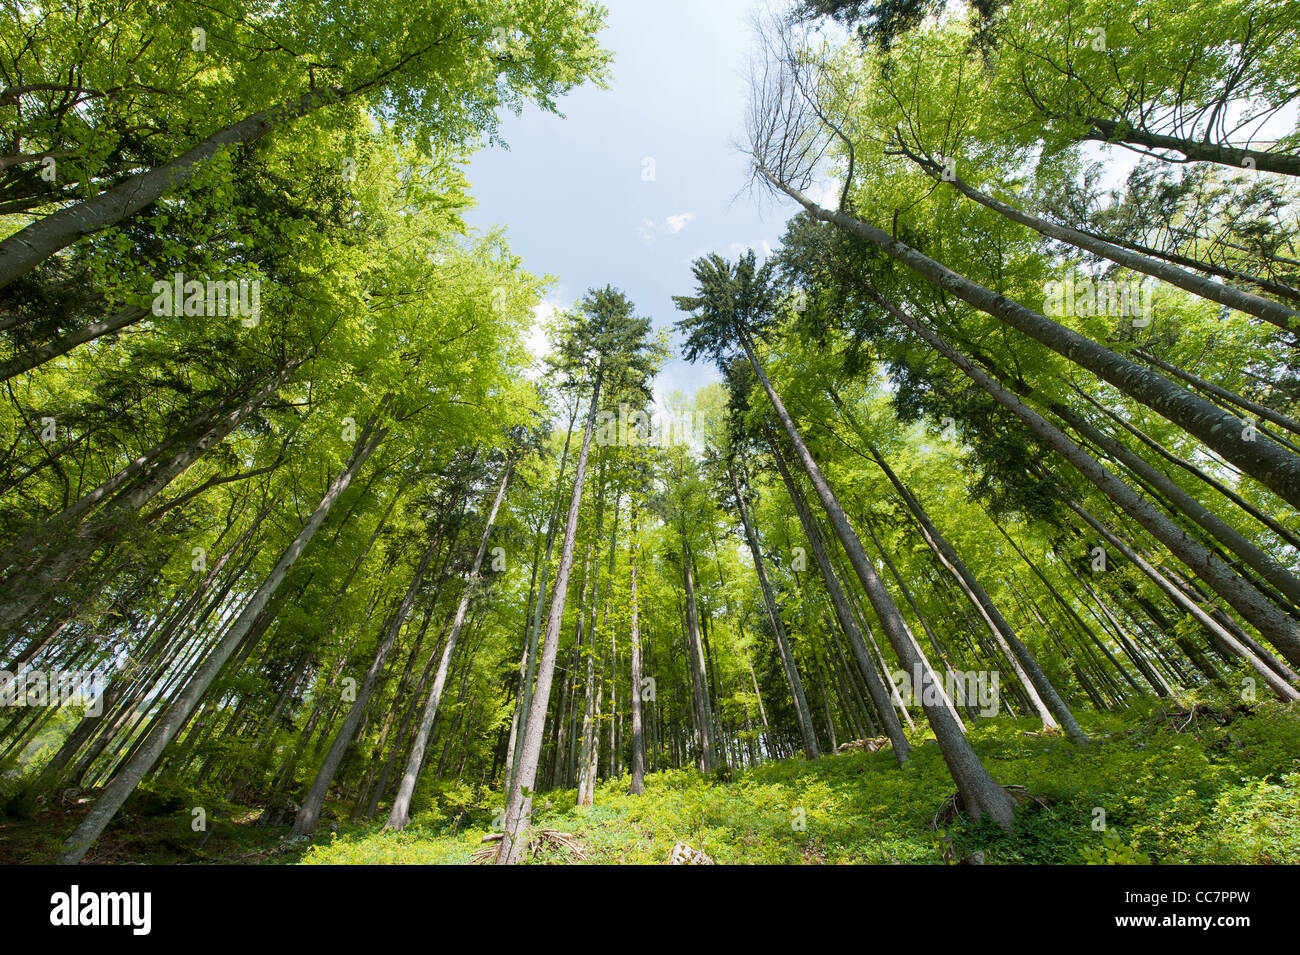 green forest in spring looking upwards with a wide angle - Stock Image